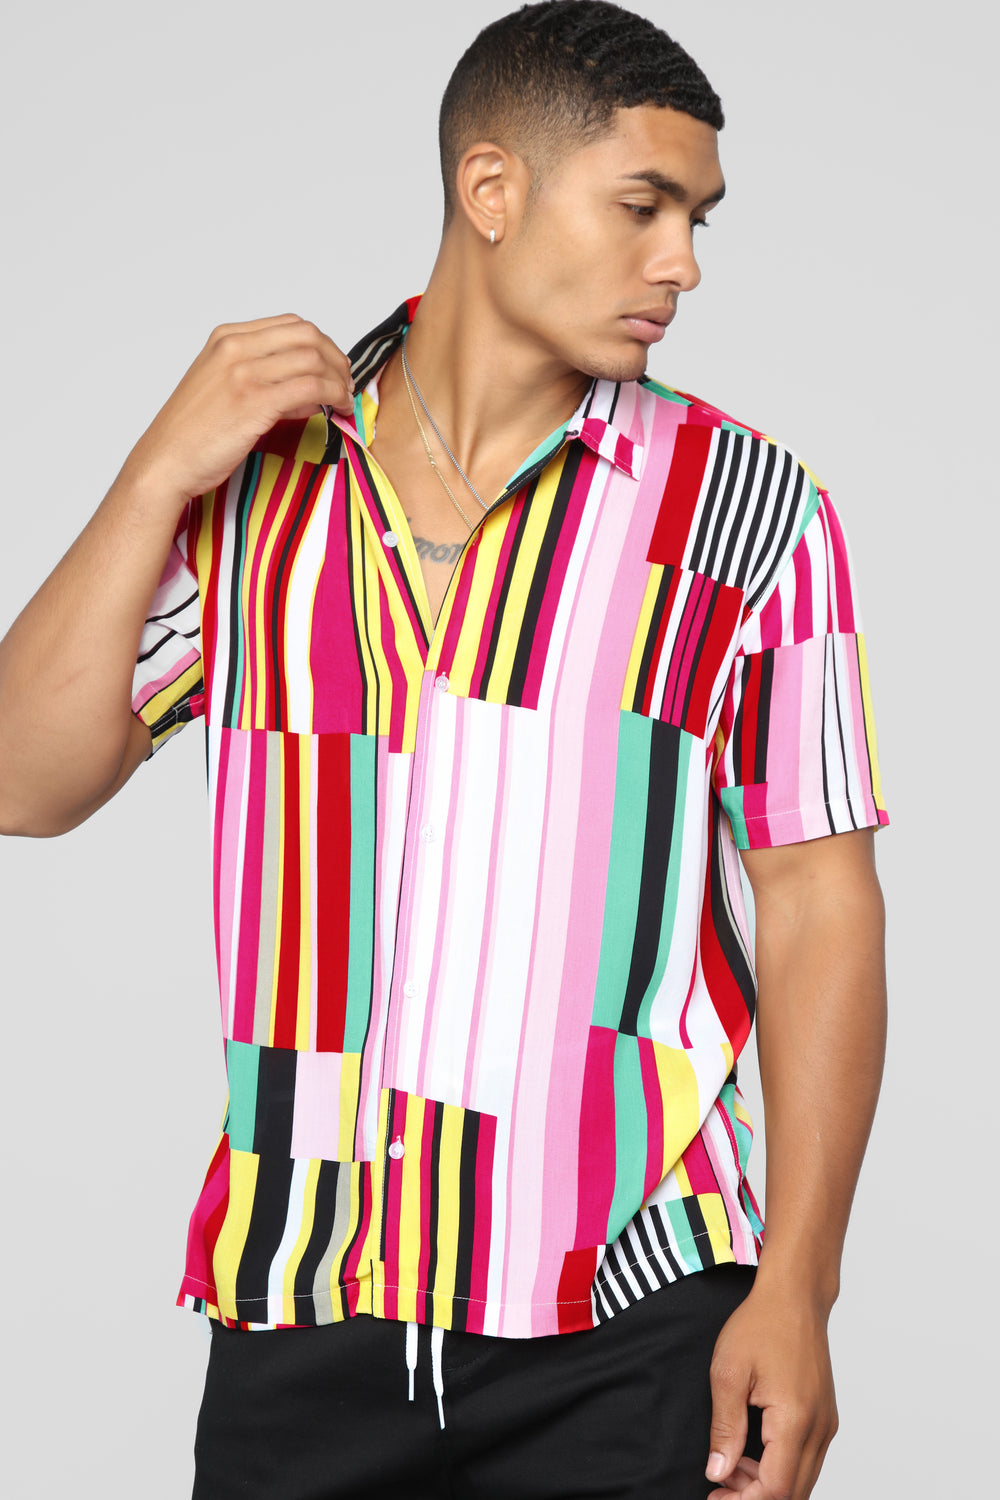 Striped Vision Short Sleeve Woven Top - Multi